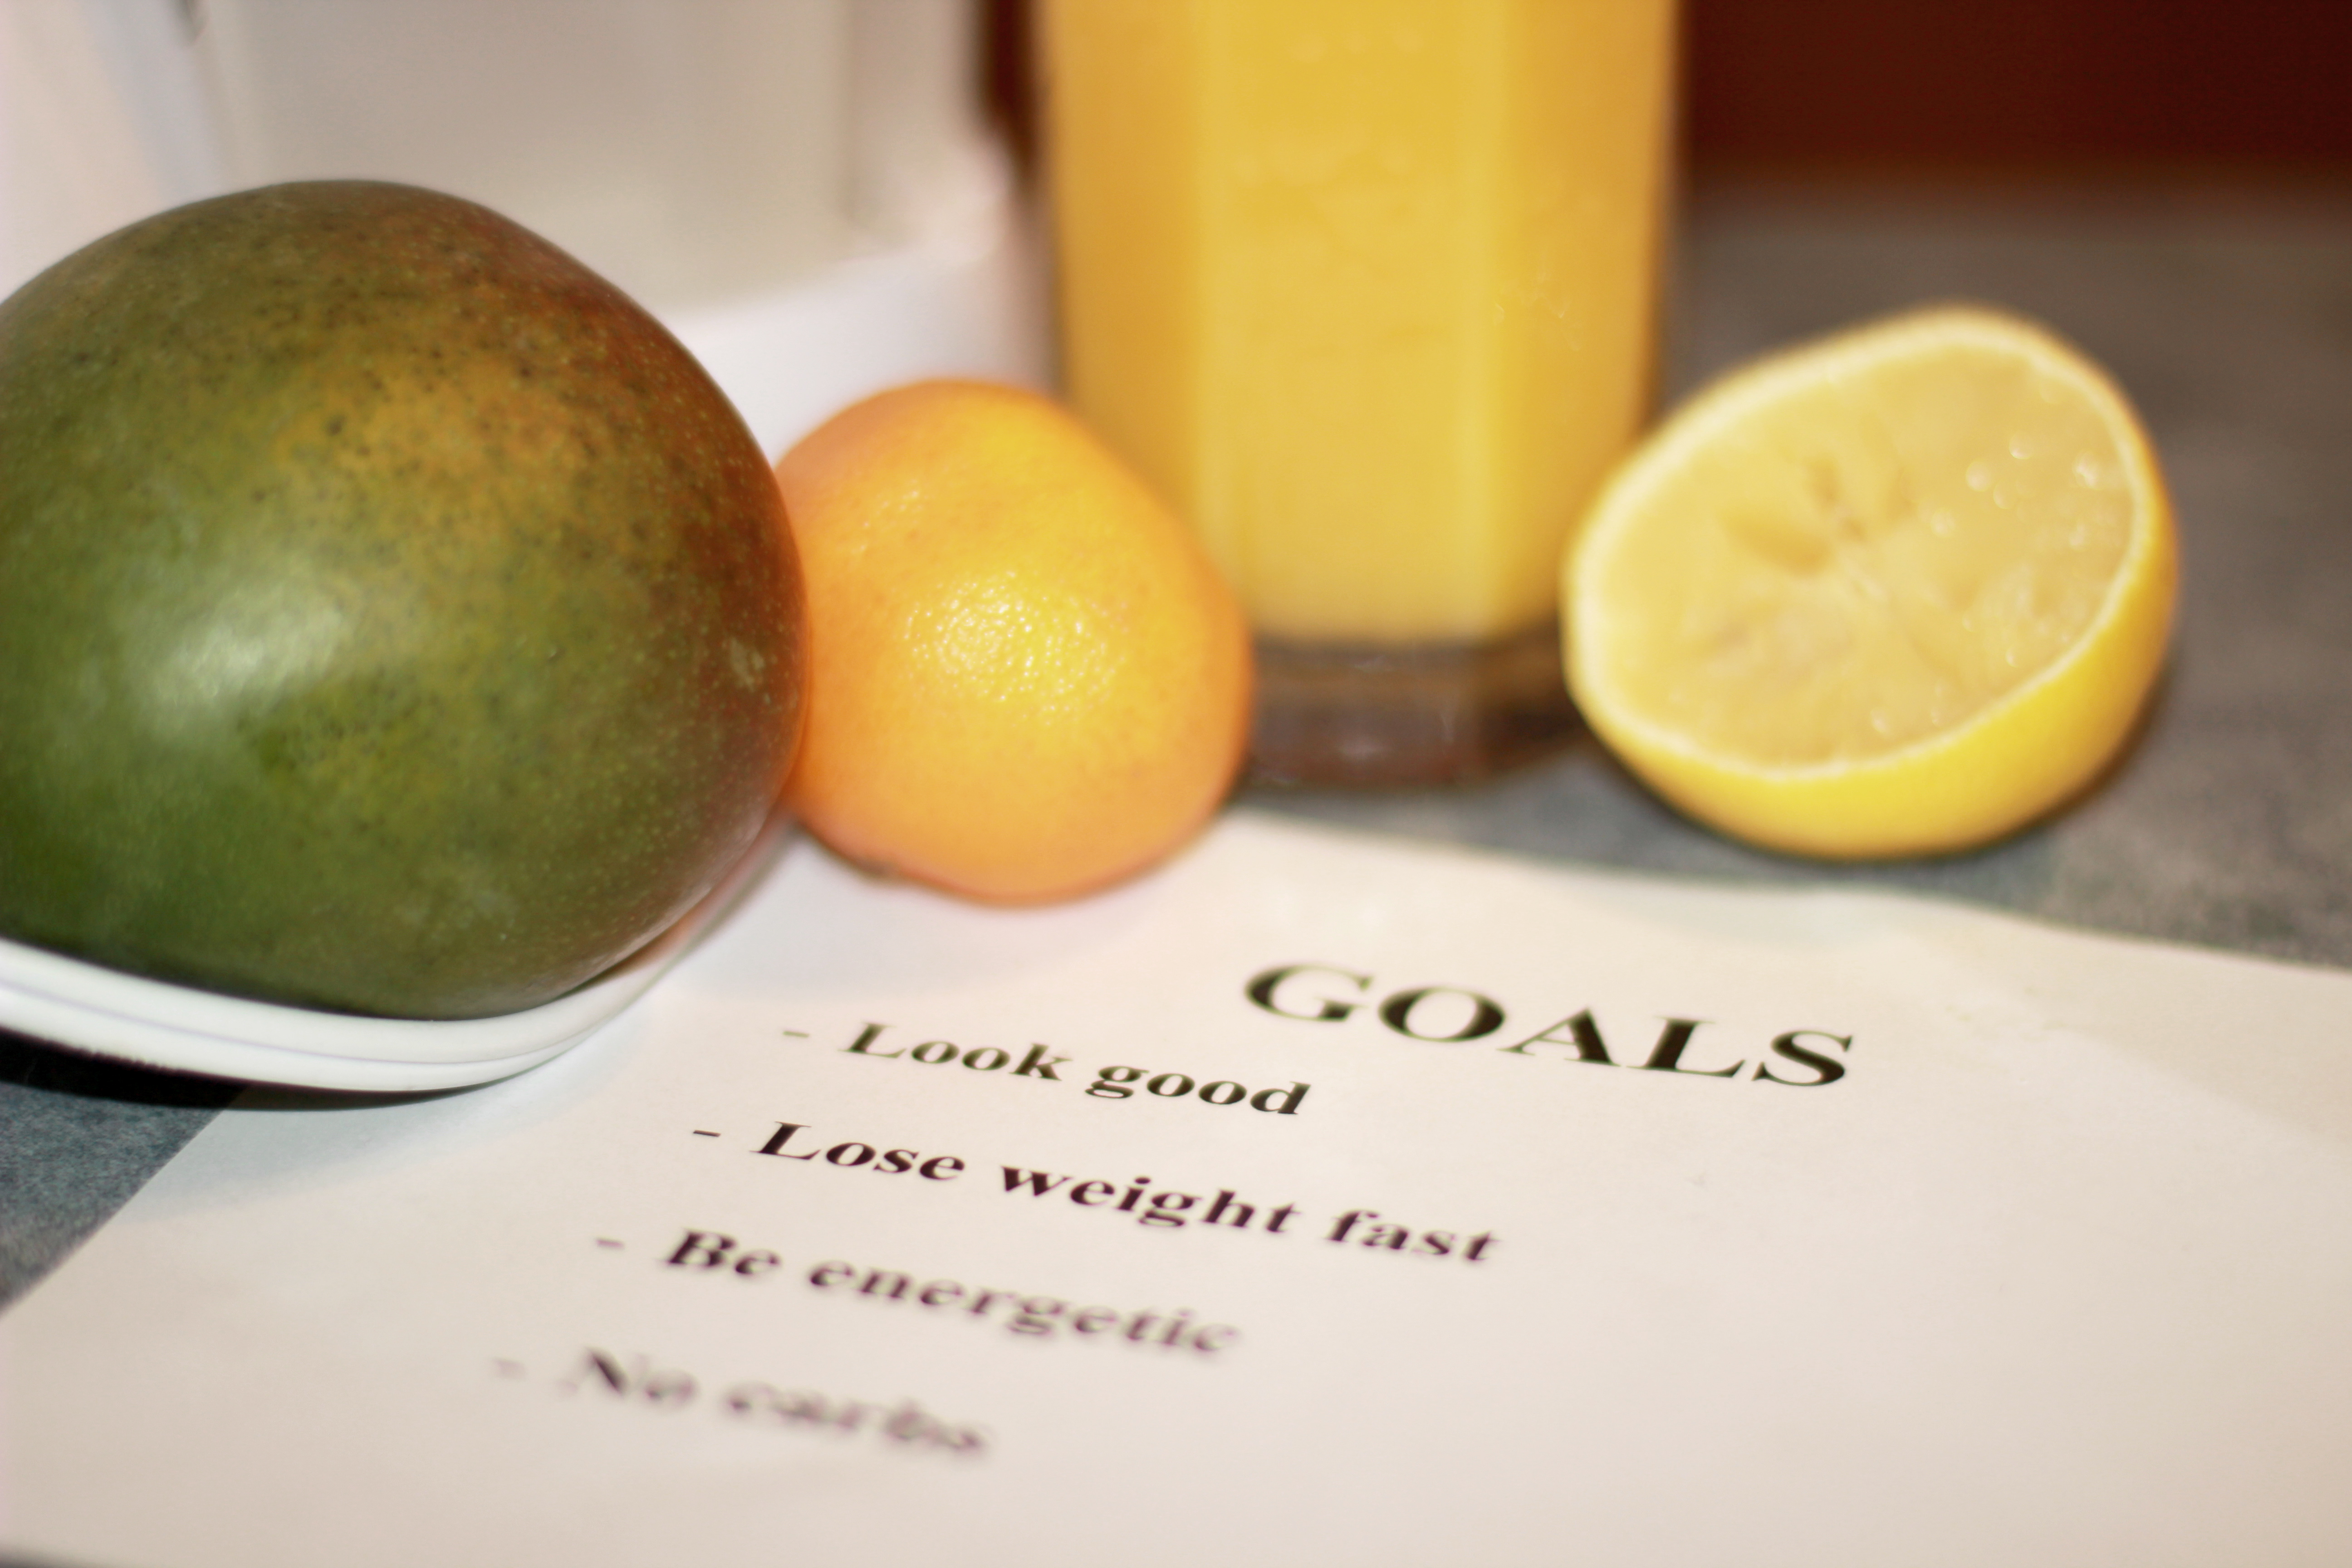 The juice cleanse: it's not as great as it looks